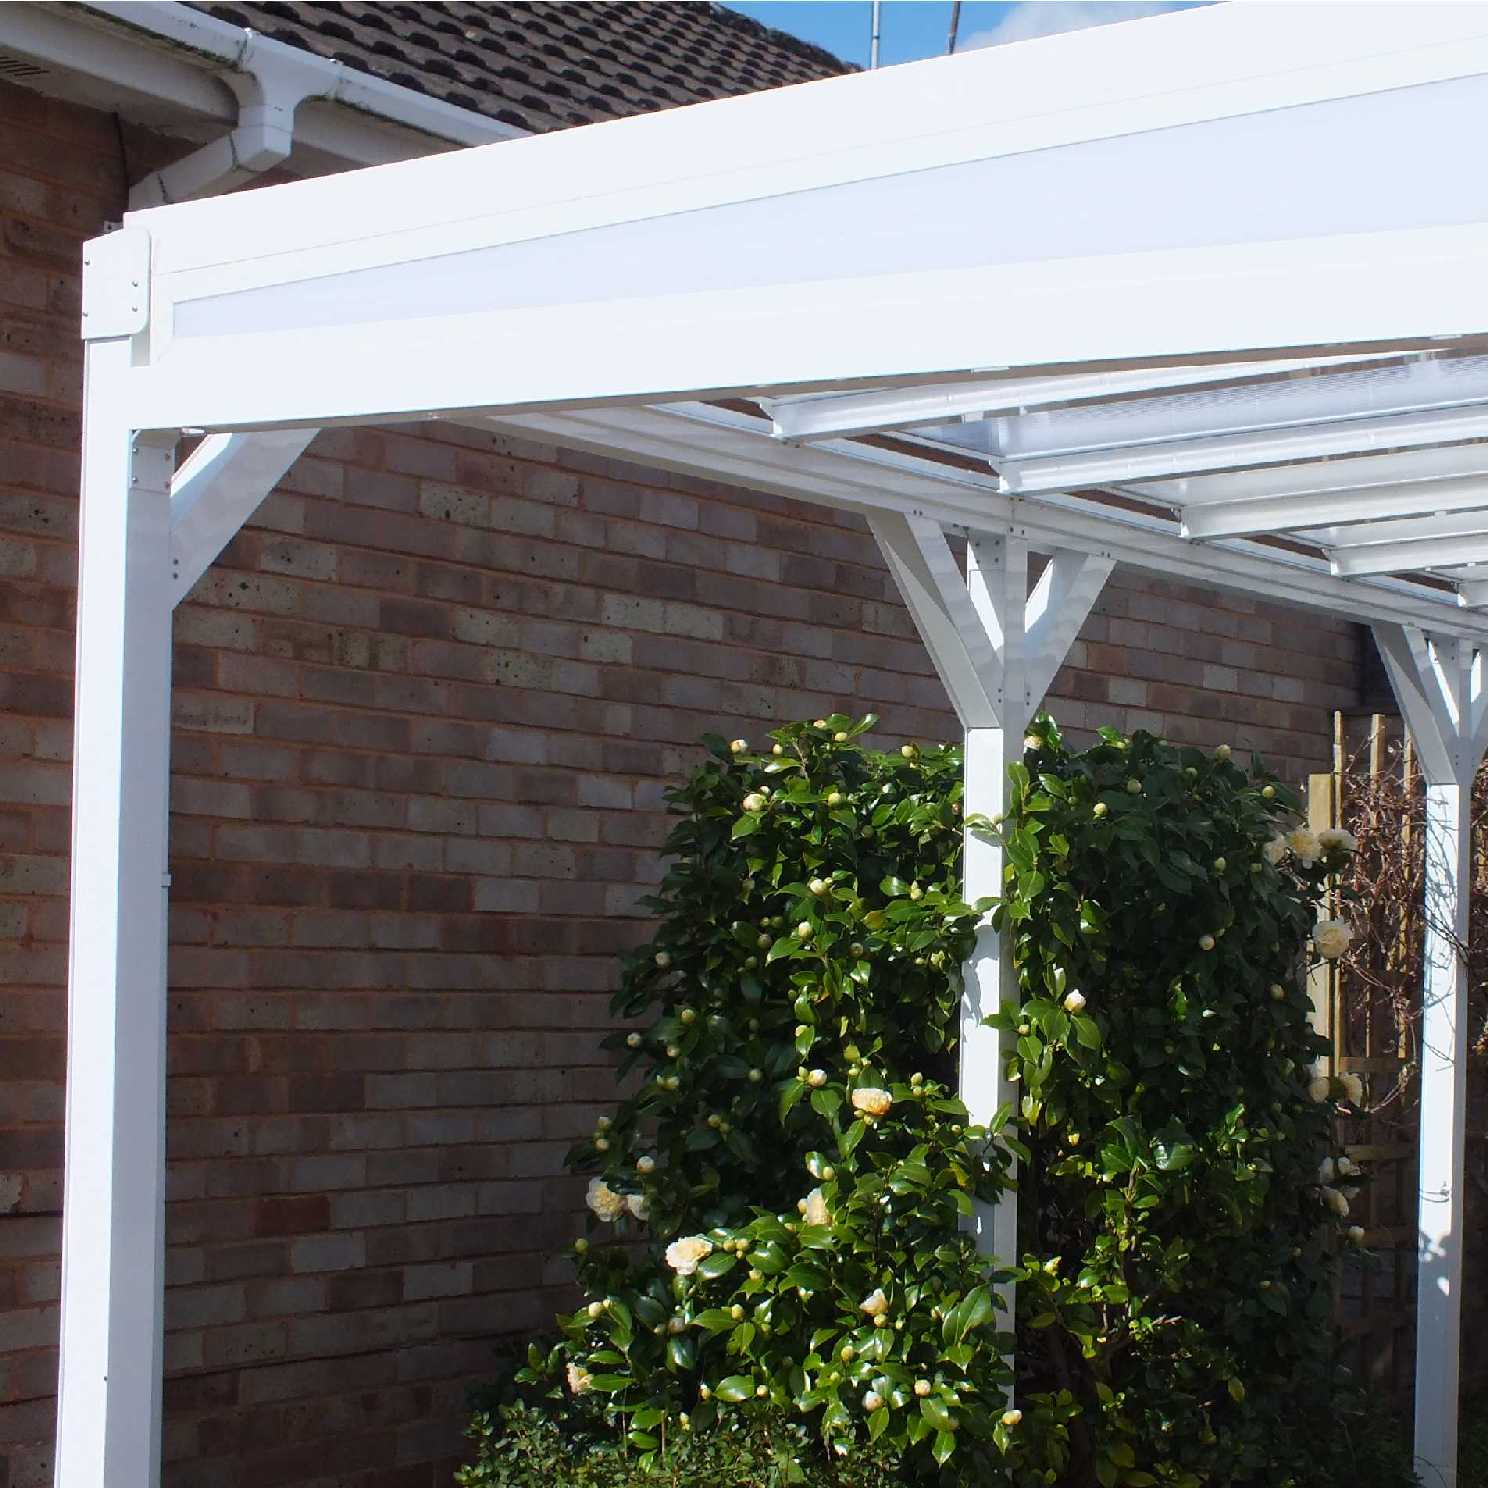 Omega Smart Lean-To Canopy with 16mm Polycarbonate Glazing - 9.1m (W) x 4.5m (P), (5) Supporting Posts from Omega Build